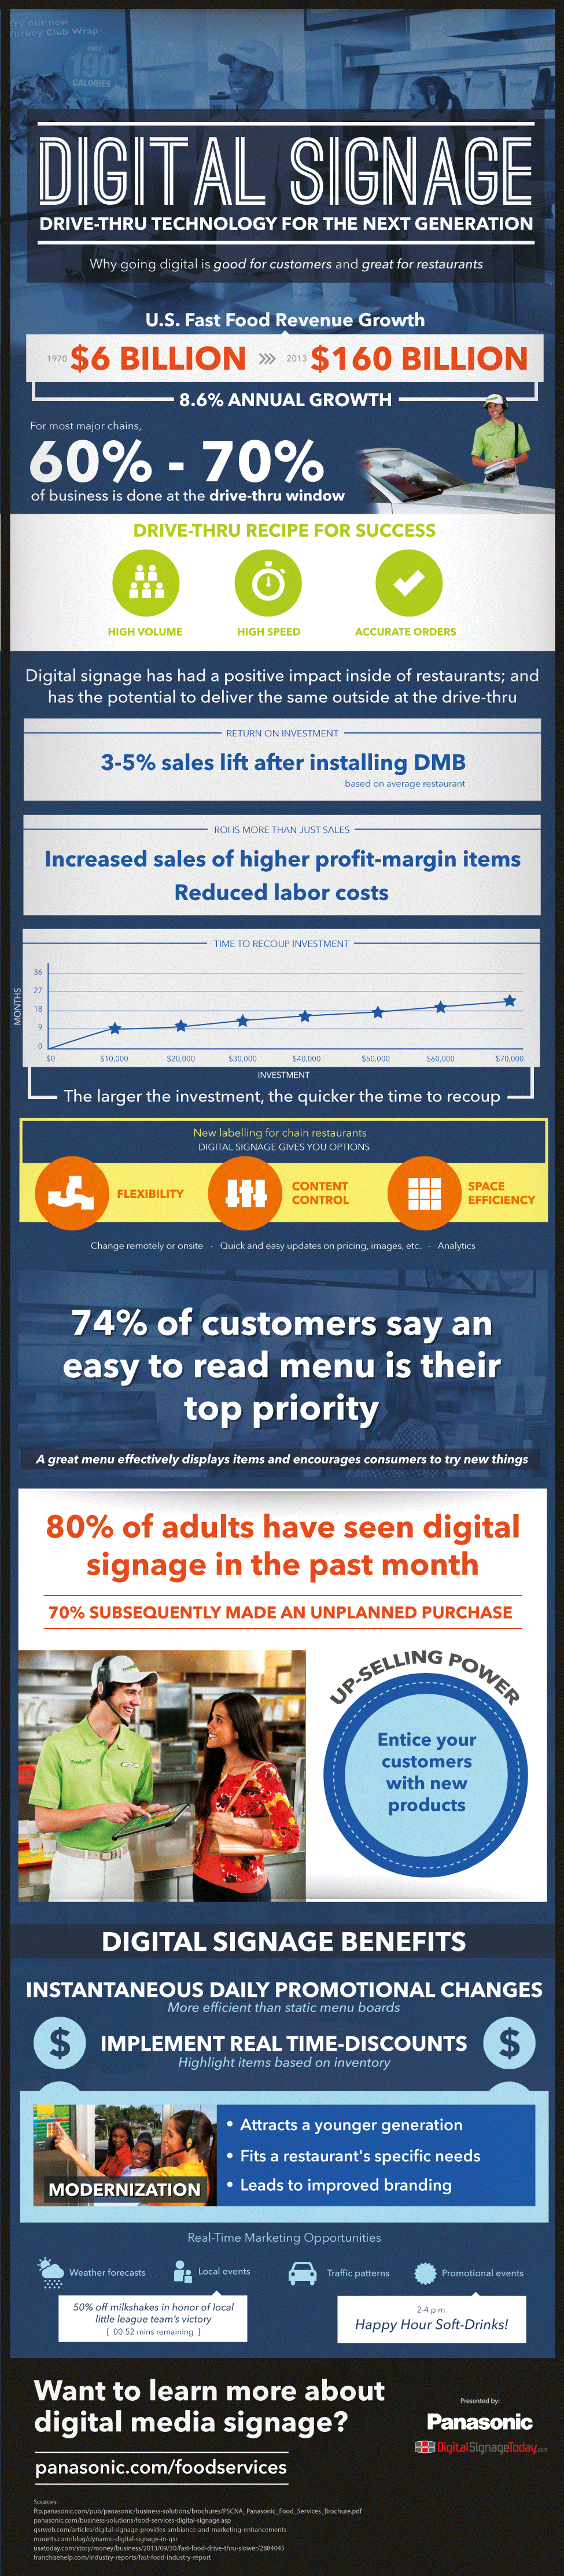 A confluence of factors pushing digital signage into the mainstream [infographic]